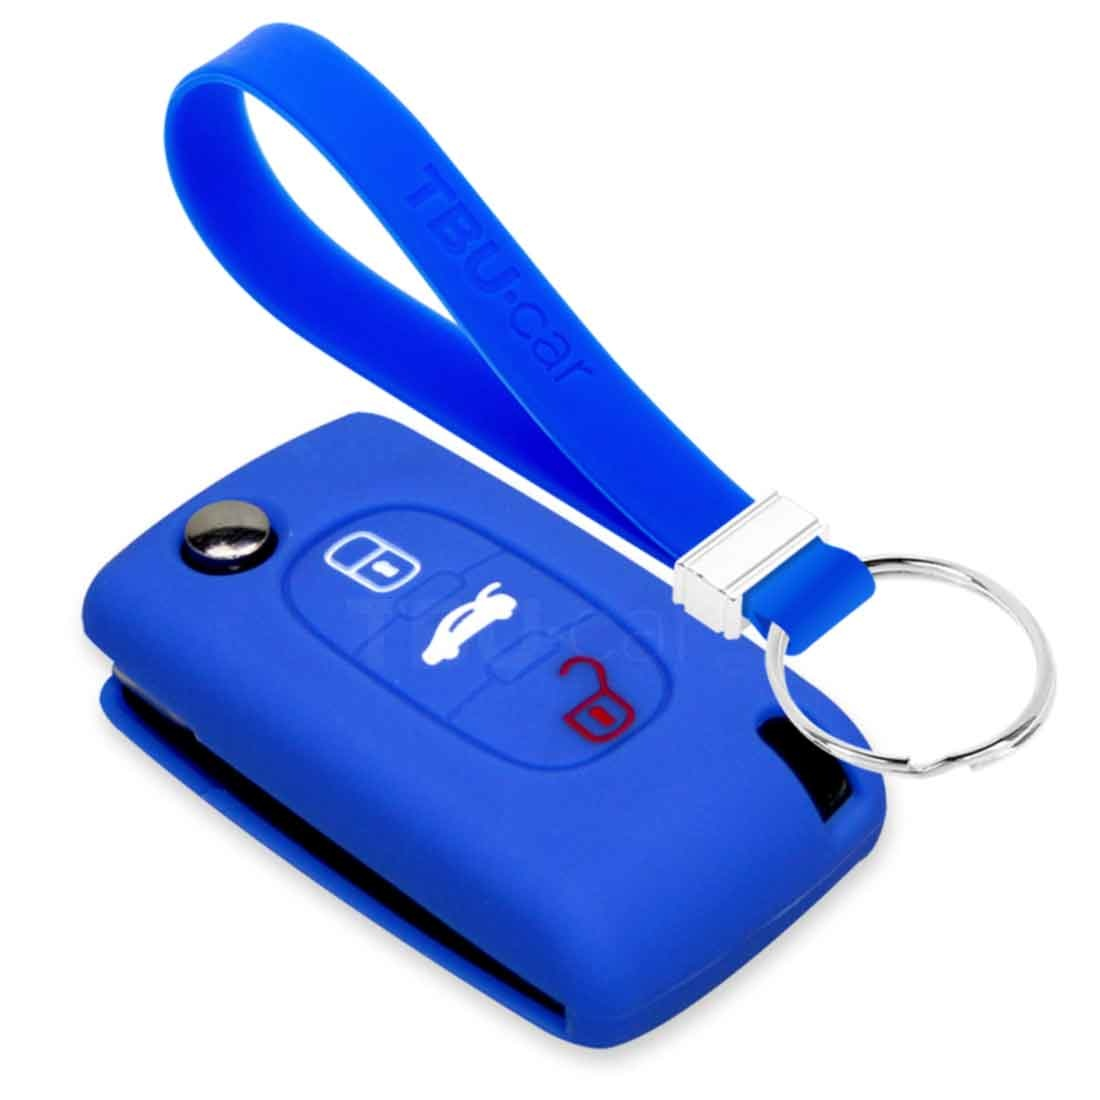 TBU car TBU car Car key cover compatible with Citroën - Silicone Protective Remote Key Shell - FOB Case Cover - Blue